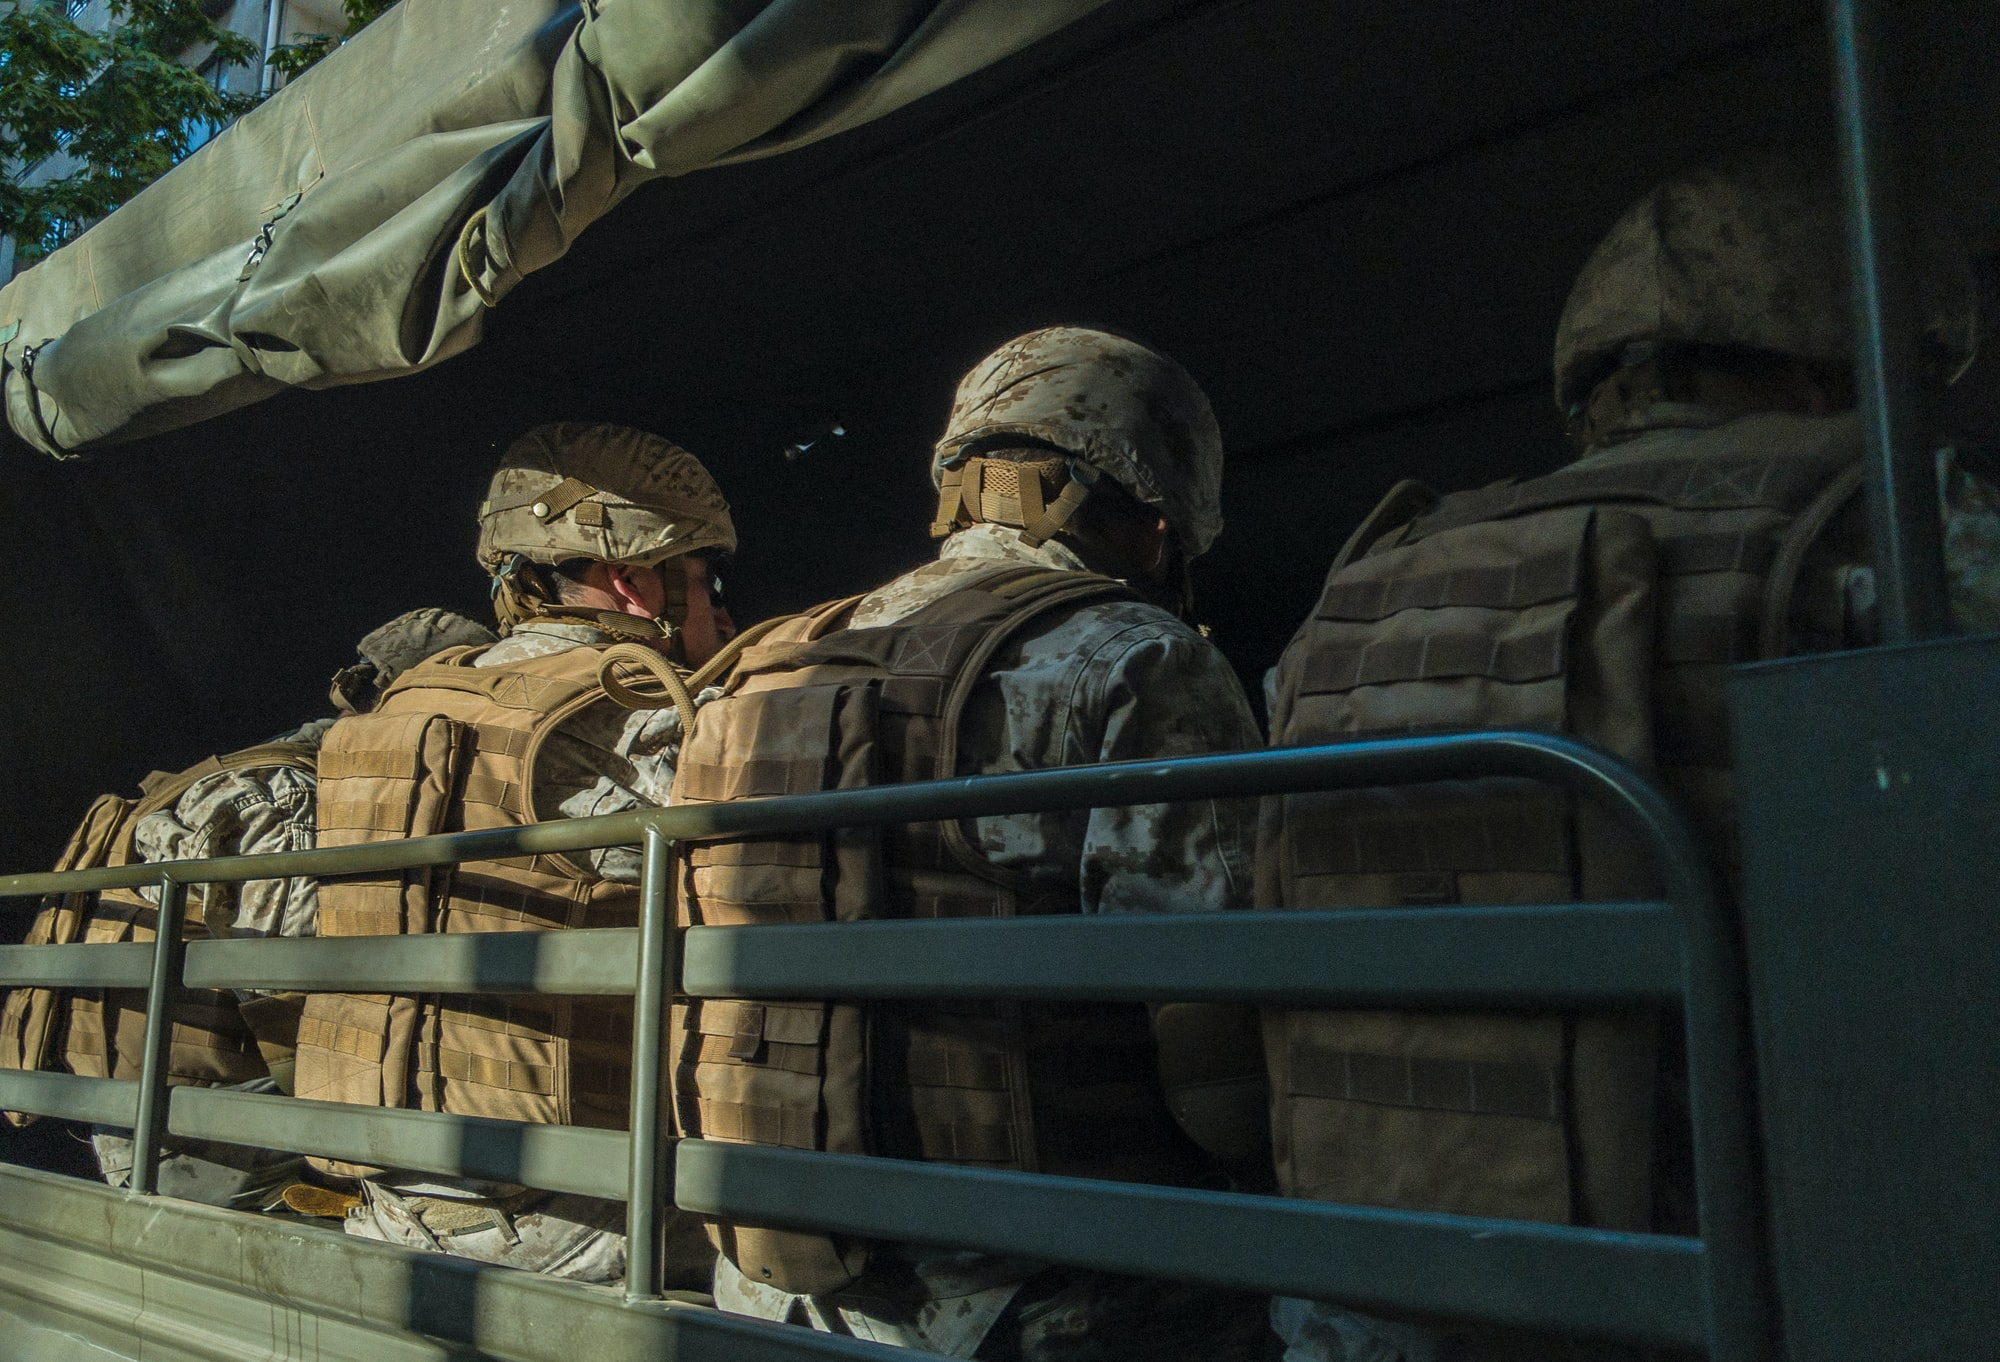 Thoughts on Military Compartmentalization